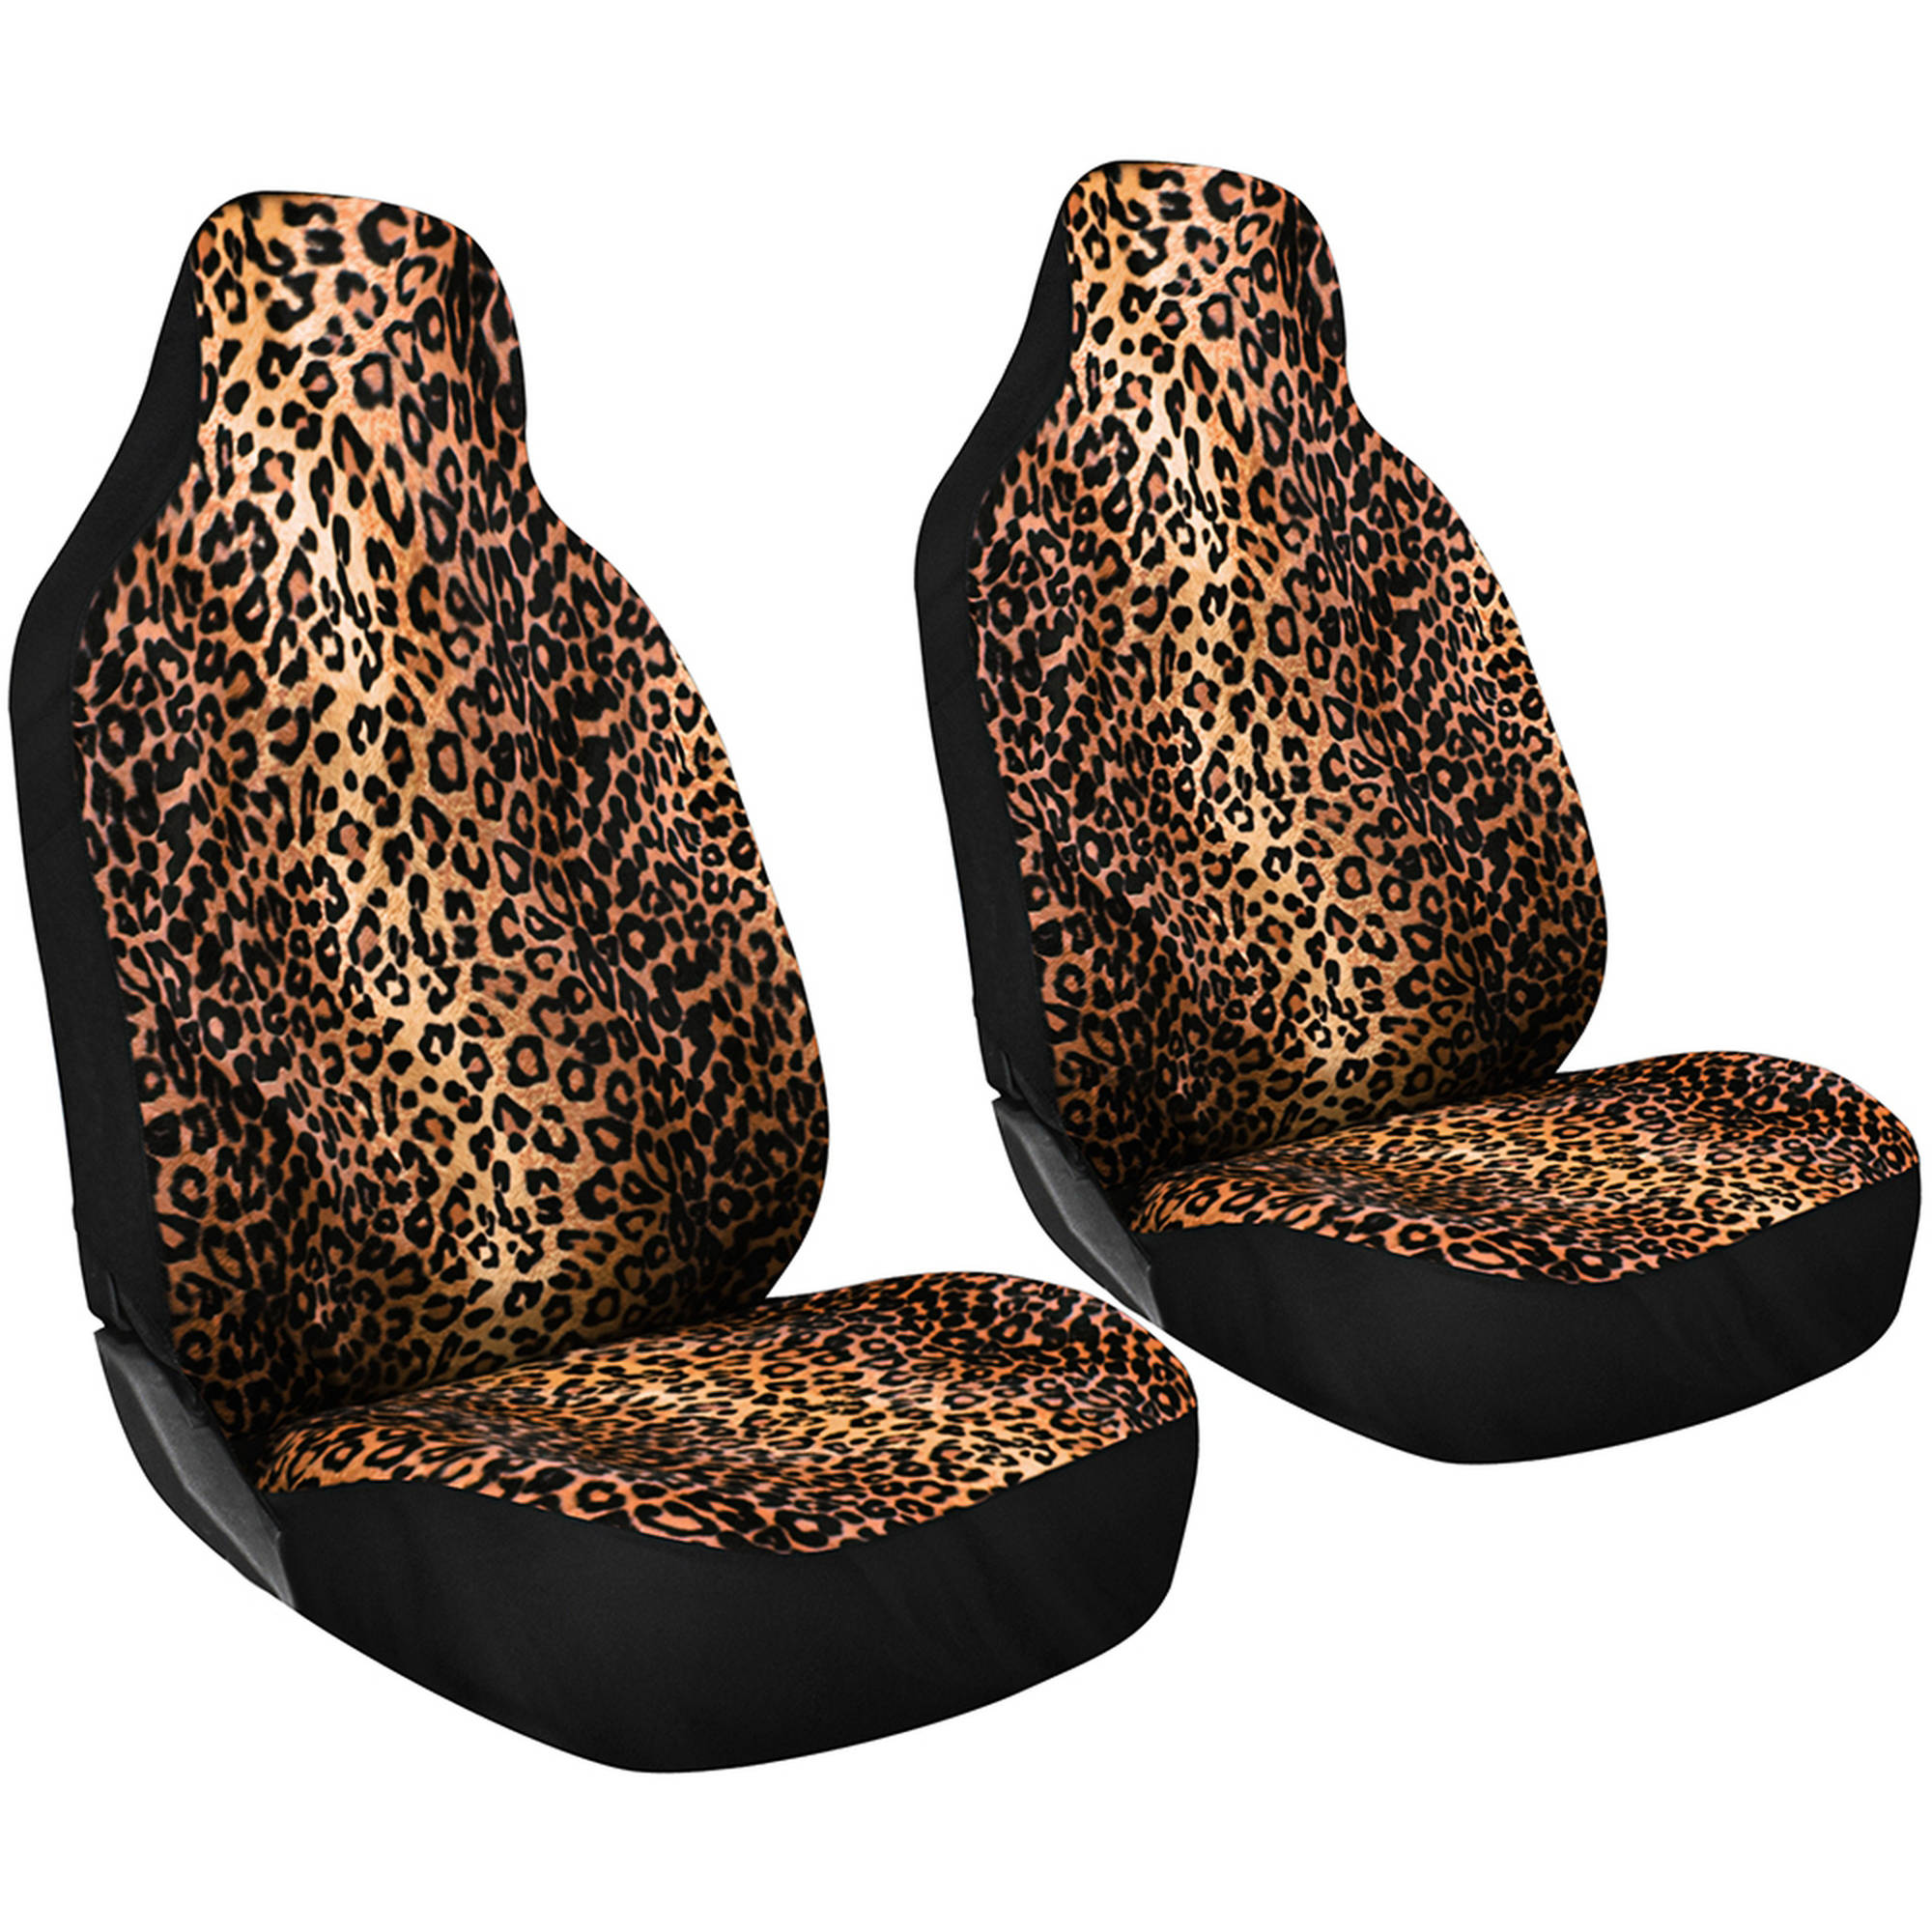 OxGord 2-Piece Set Leopard Animal Print Integrated High Back Bucket Seat Covers, Universal Fit for Car, SUV, Van & Trucks, Front Driver & Passenger Seats